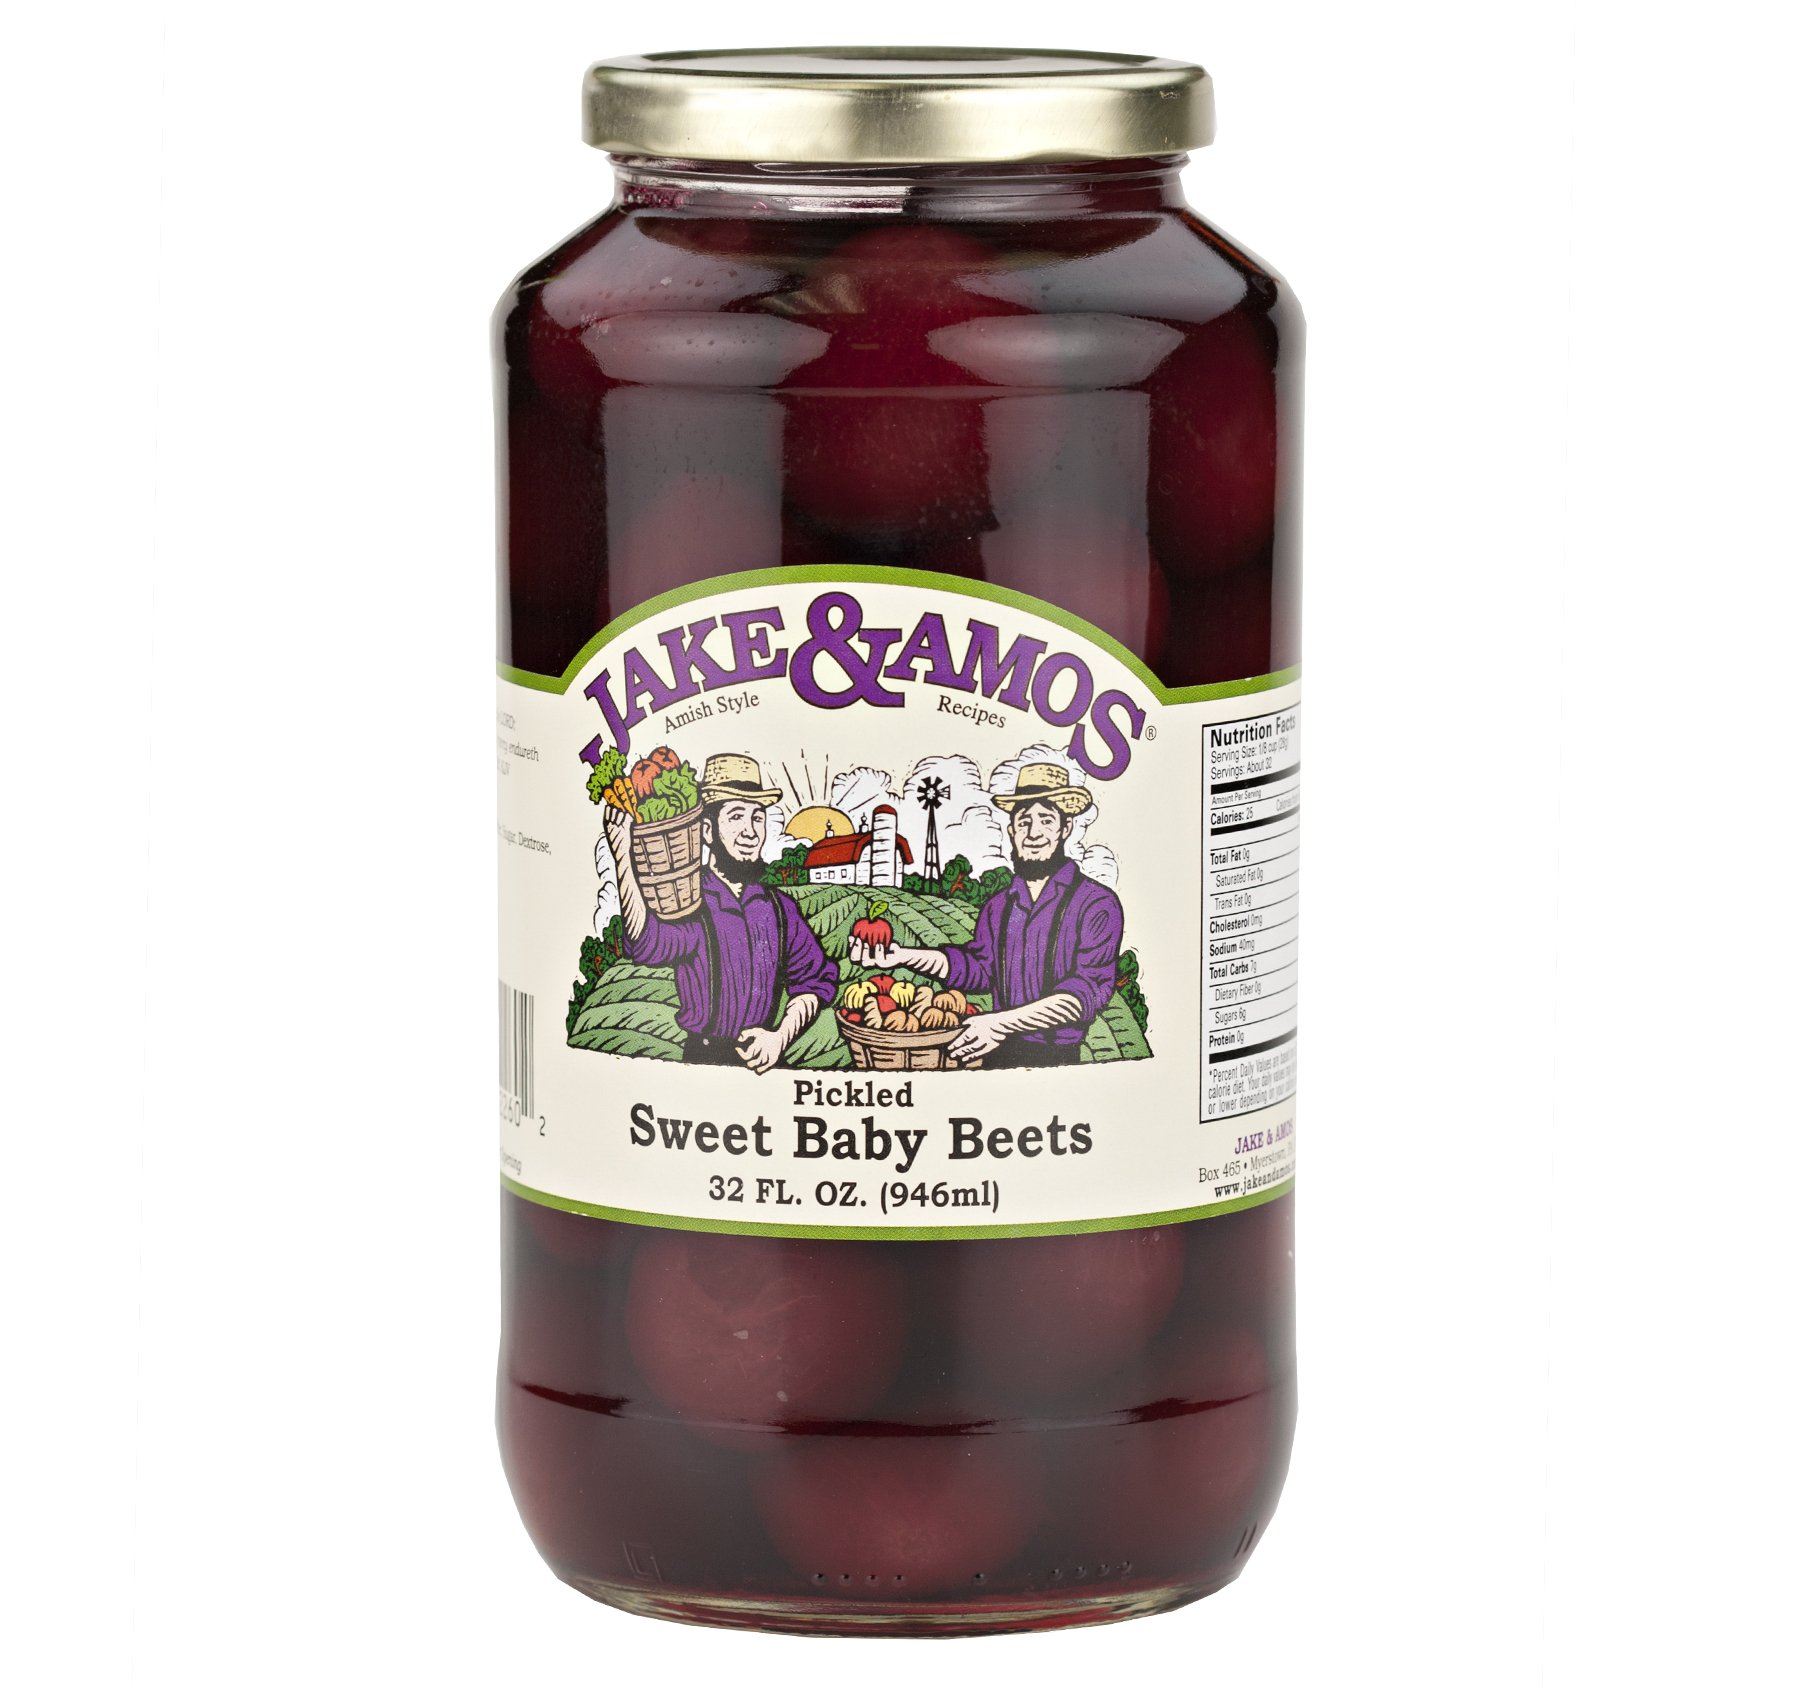 Jake & Amos Pickled Sweet Baby Beets 32 Oz. (2 Jars) by Jake & Amos®